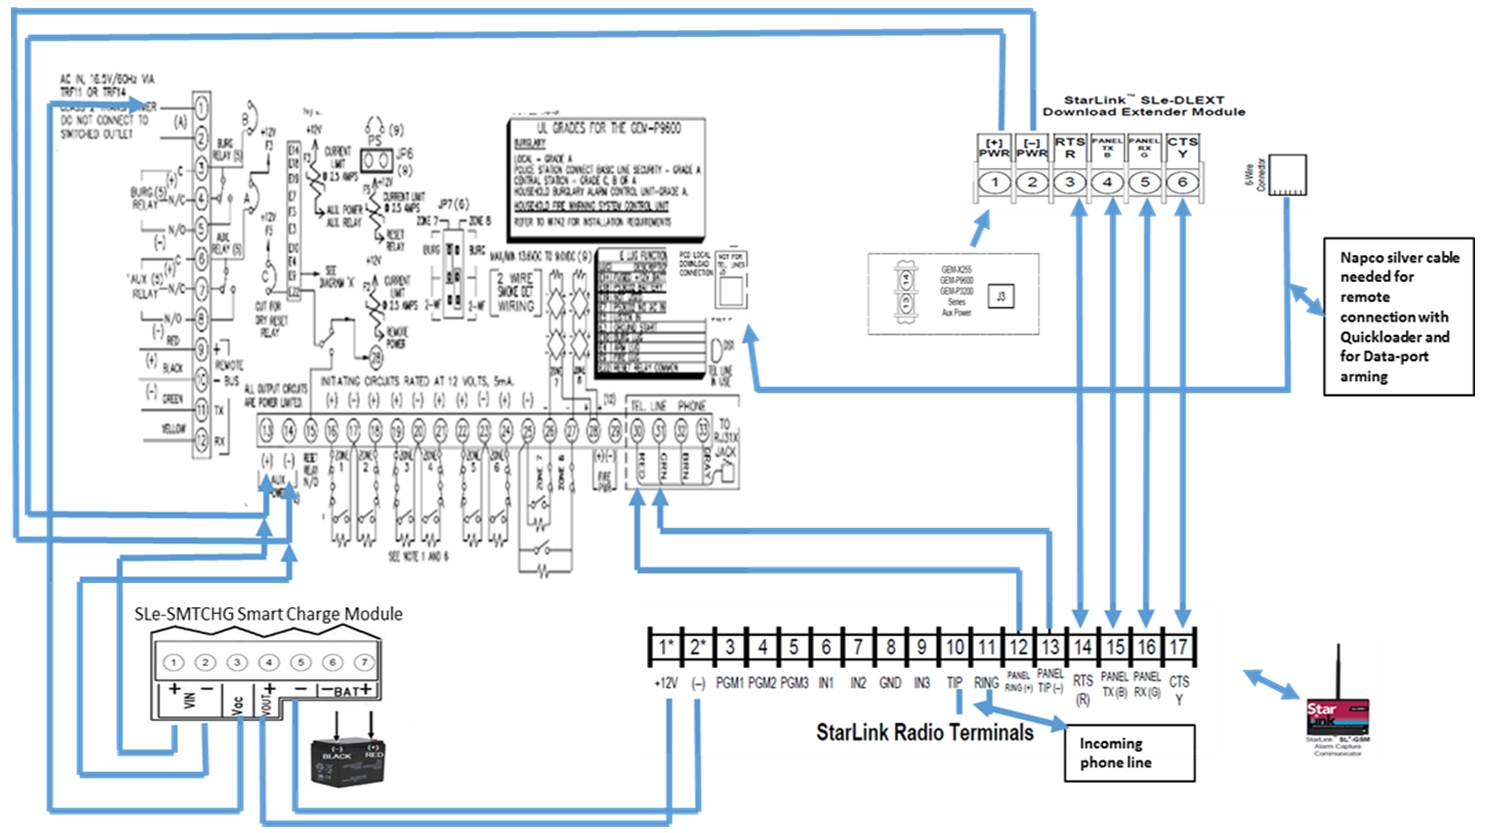 UU06a napco technical library napco starlink wiring diagram at panicattacktreatment.co